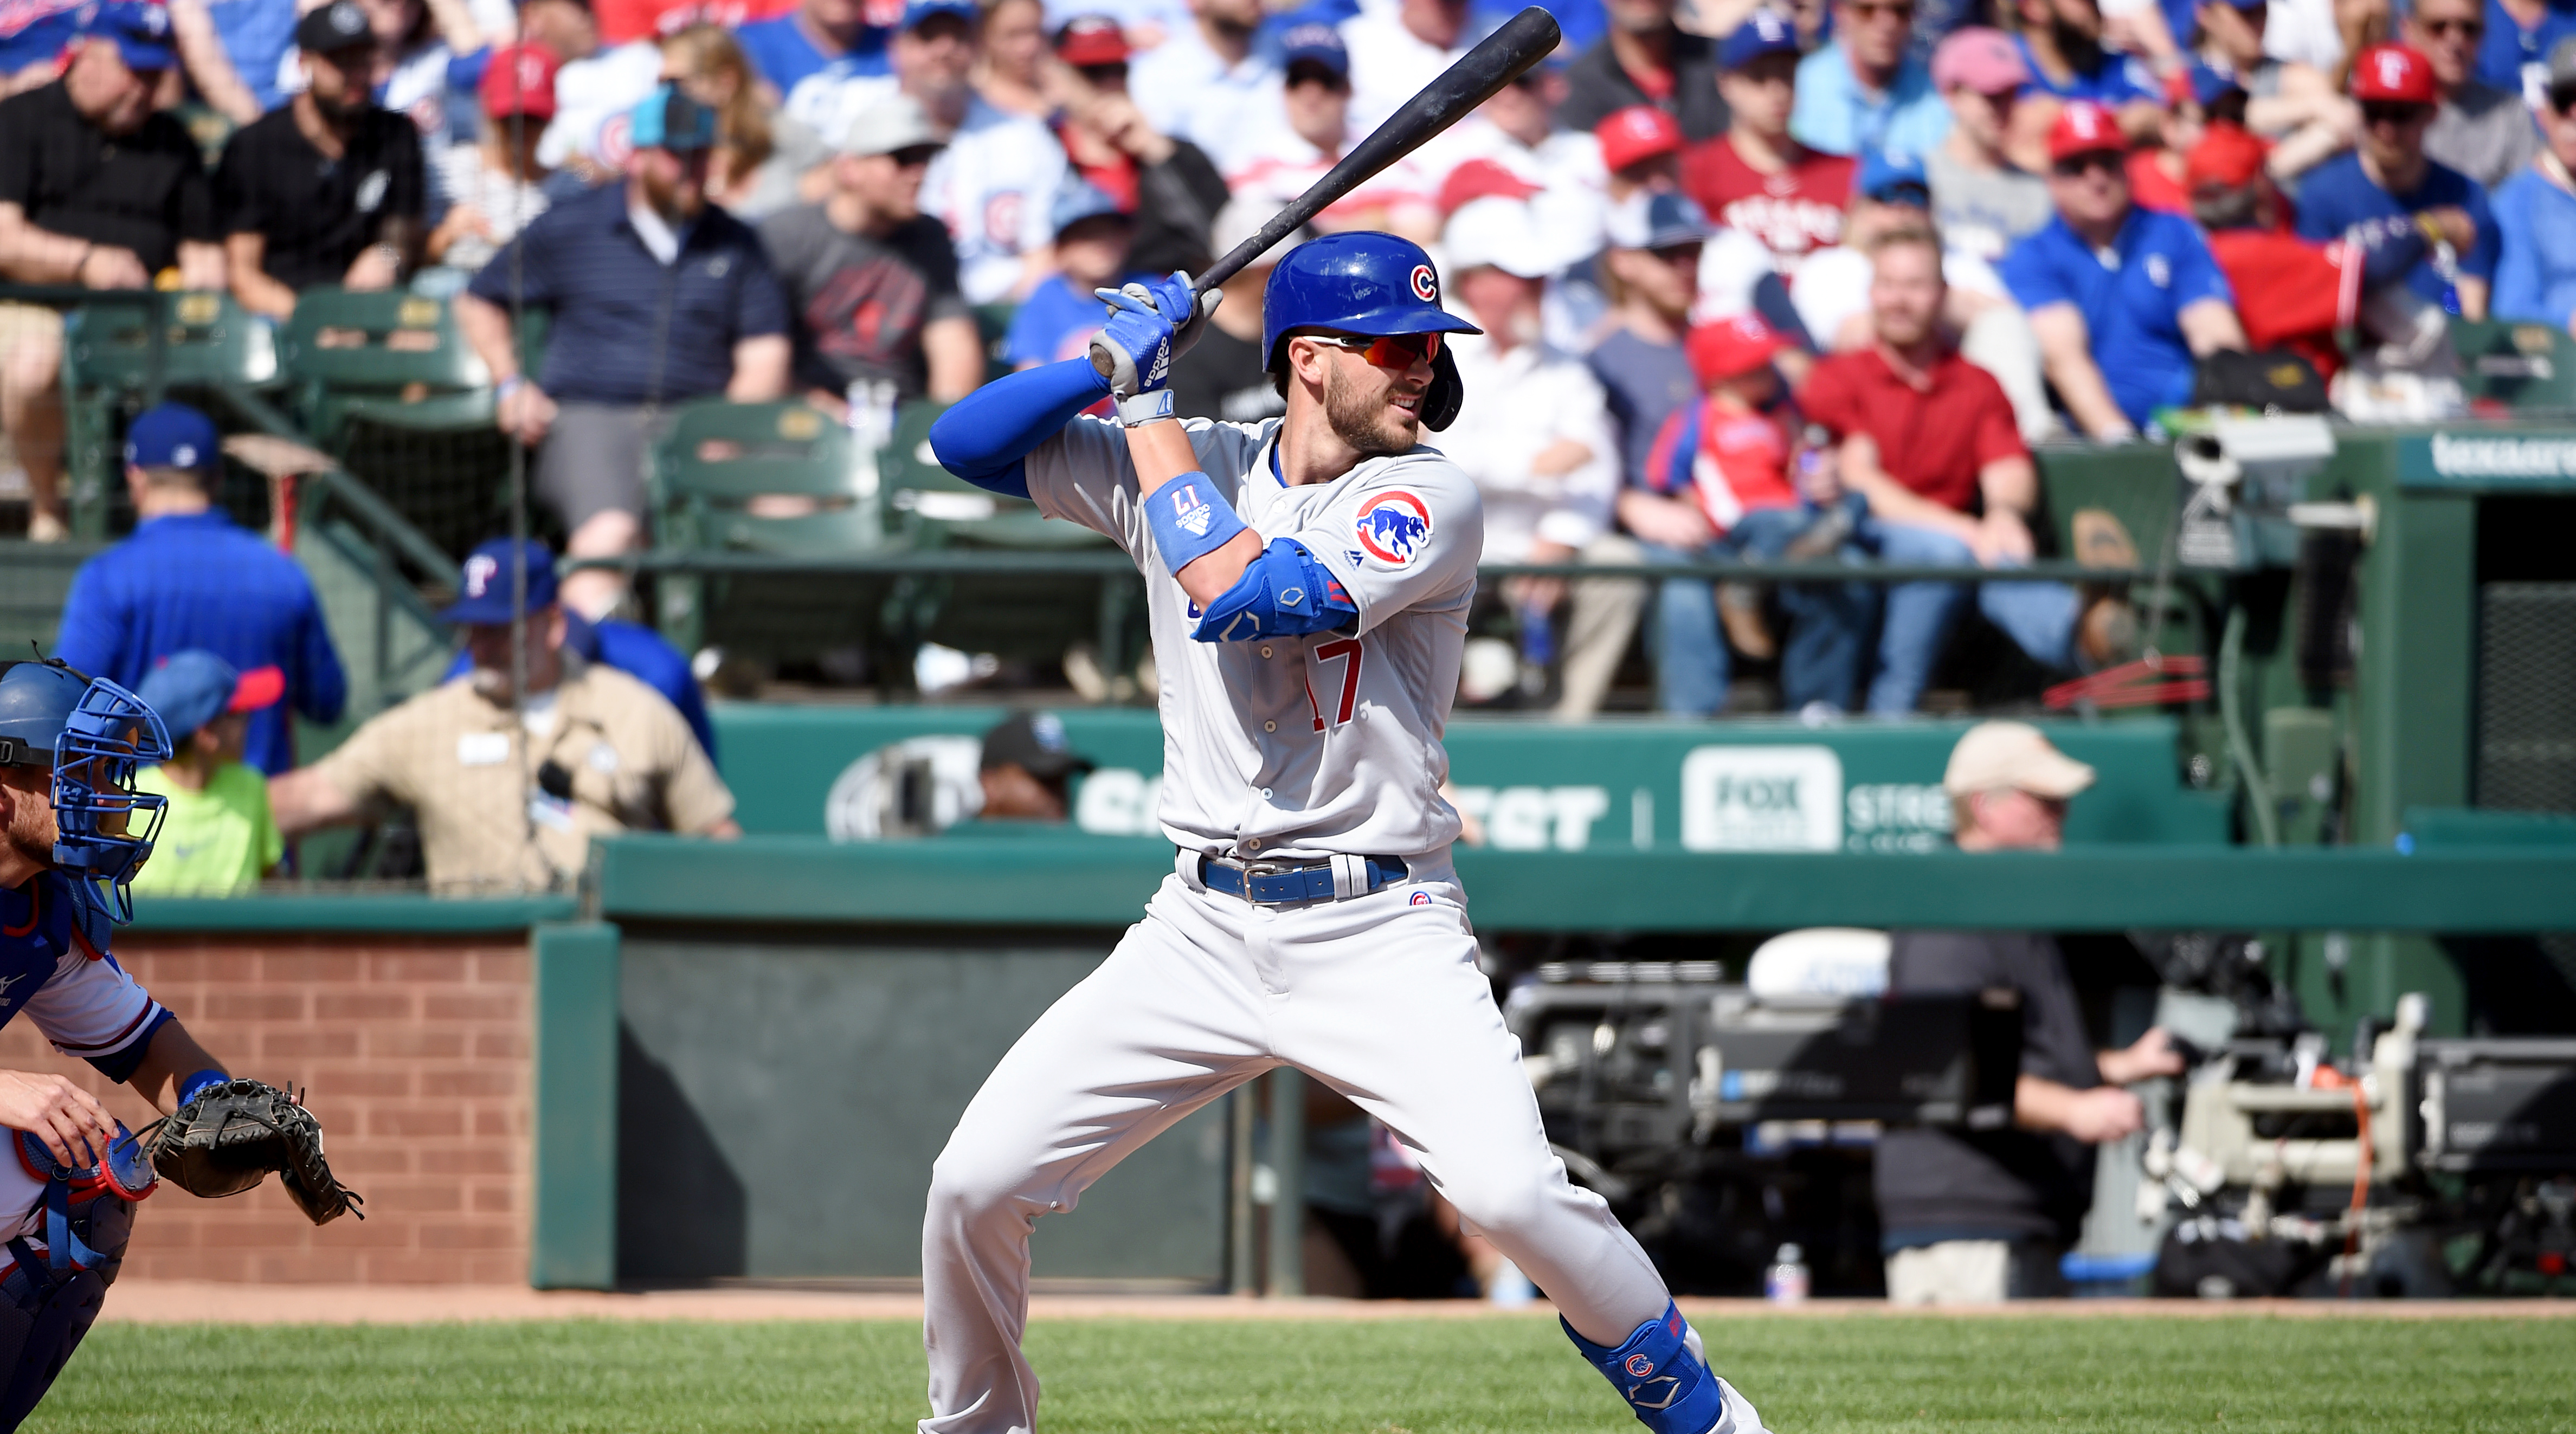 Chicago Cubs v. Texas Rangers